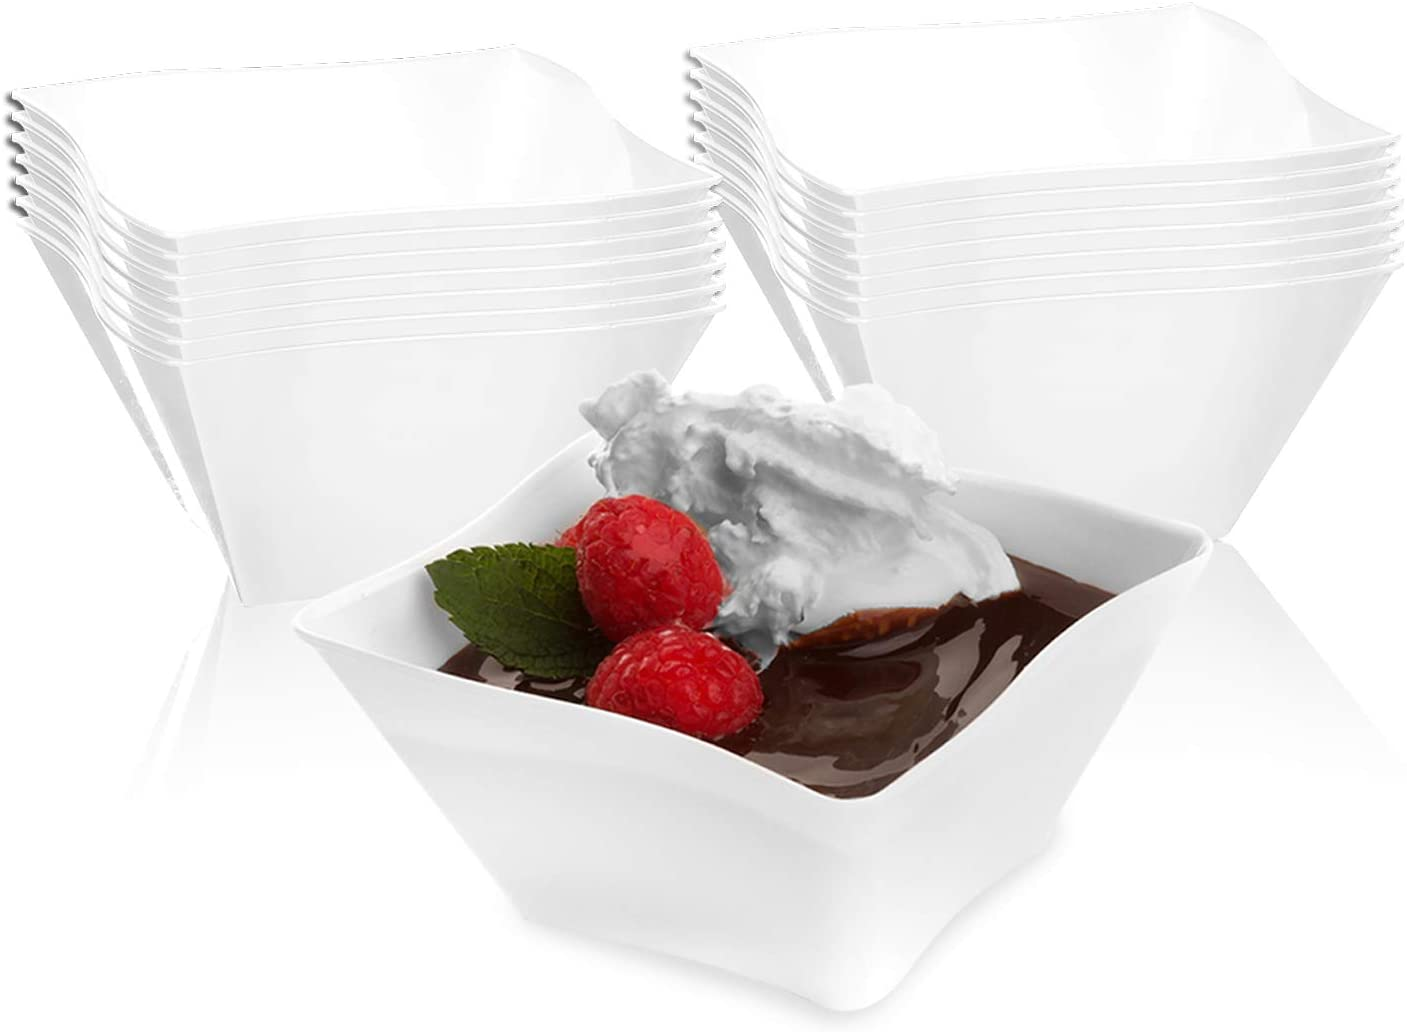 Elegant Disposable Plastic Bowls 120 Pcs - 14 oz Heavy Duty Fancy Wave White Soup Bowls – Reusable Bulk Party Dessert Cereal Salad Bowls For Wedding, Christmas, Thanksgiving, Birthday & All Occasions